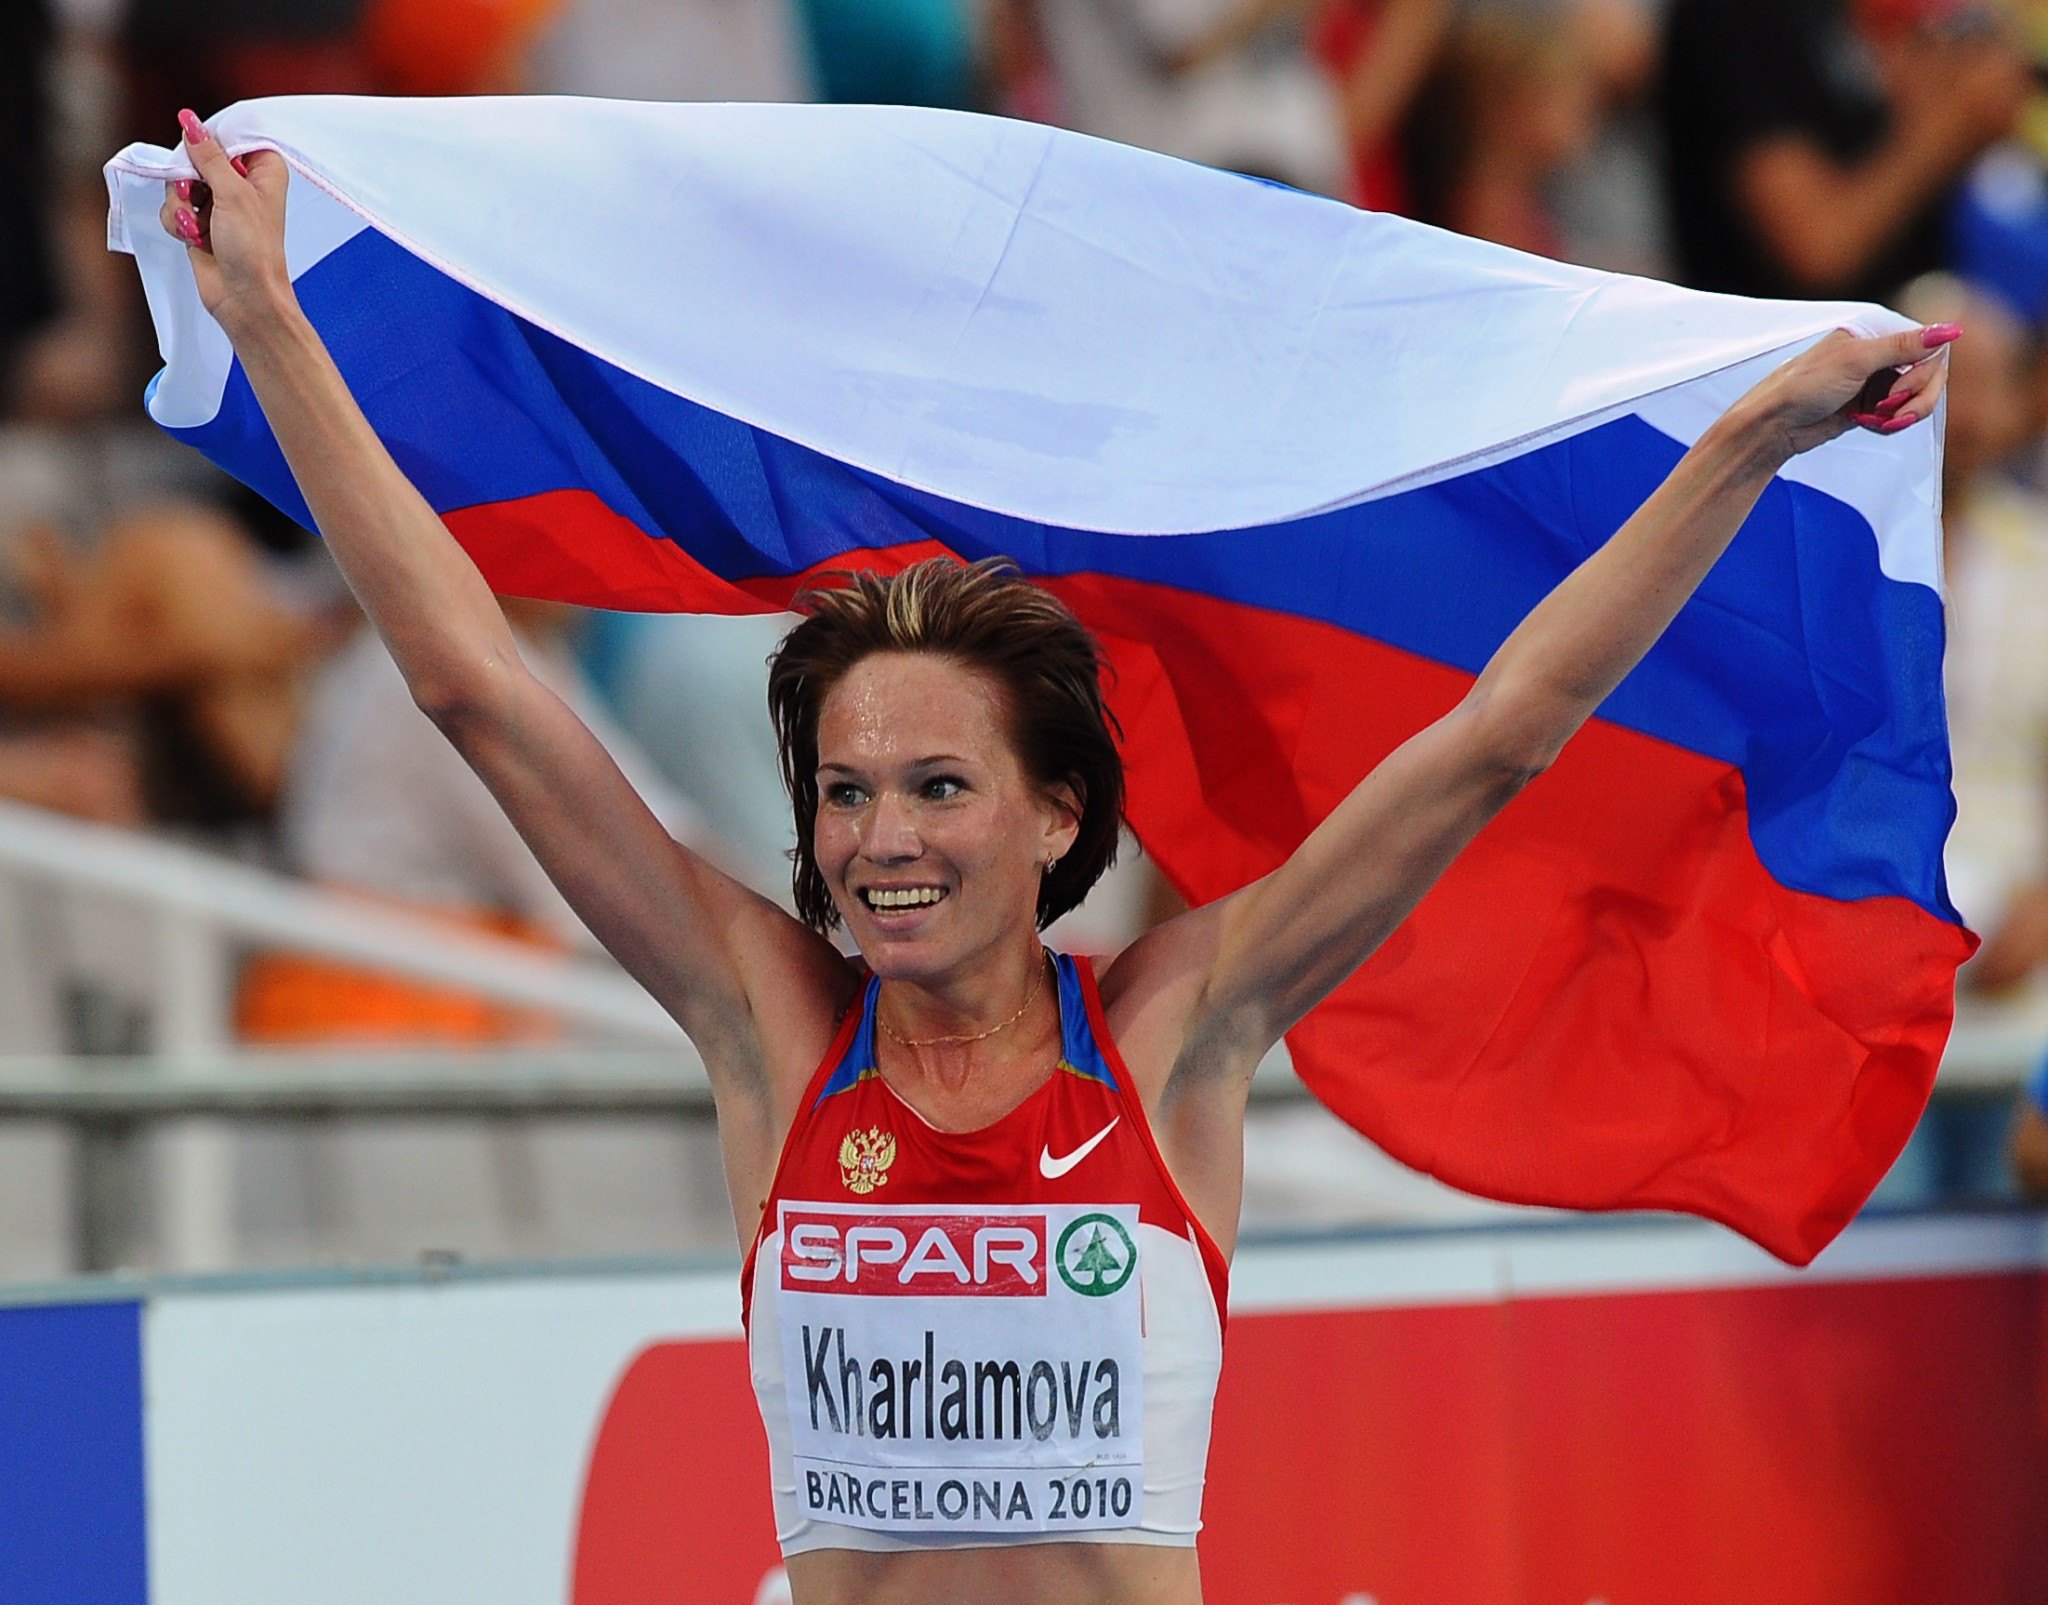 Russia bans six athletes on eve of appeal to have IAAF suspension lifted